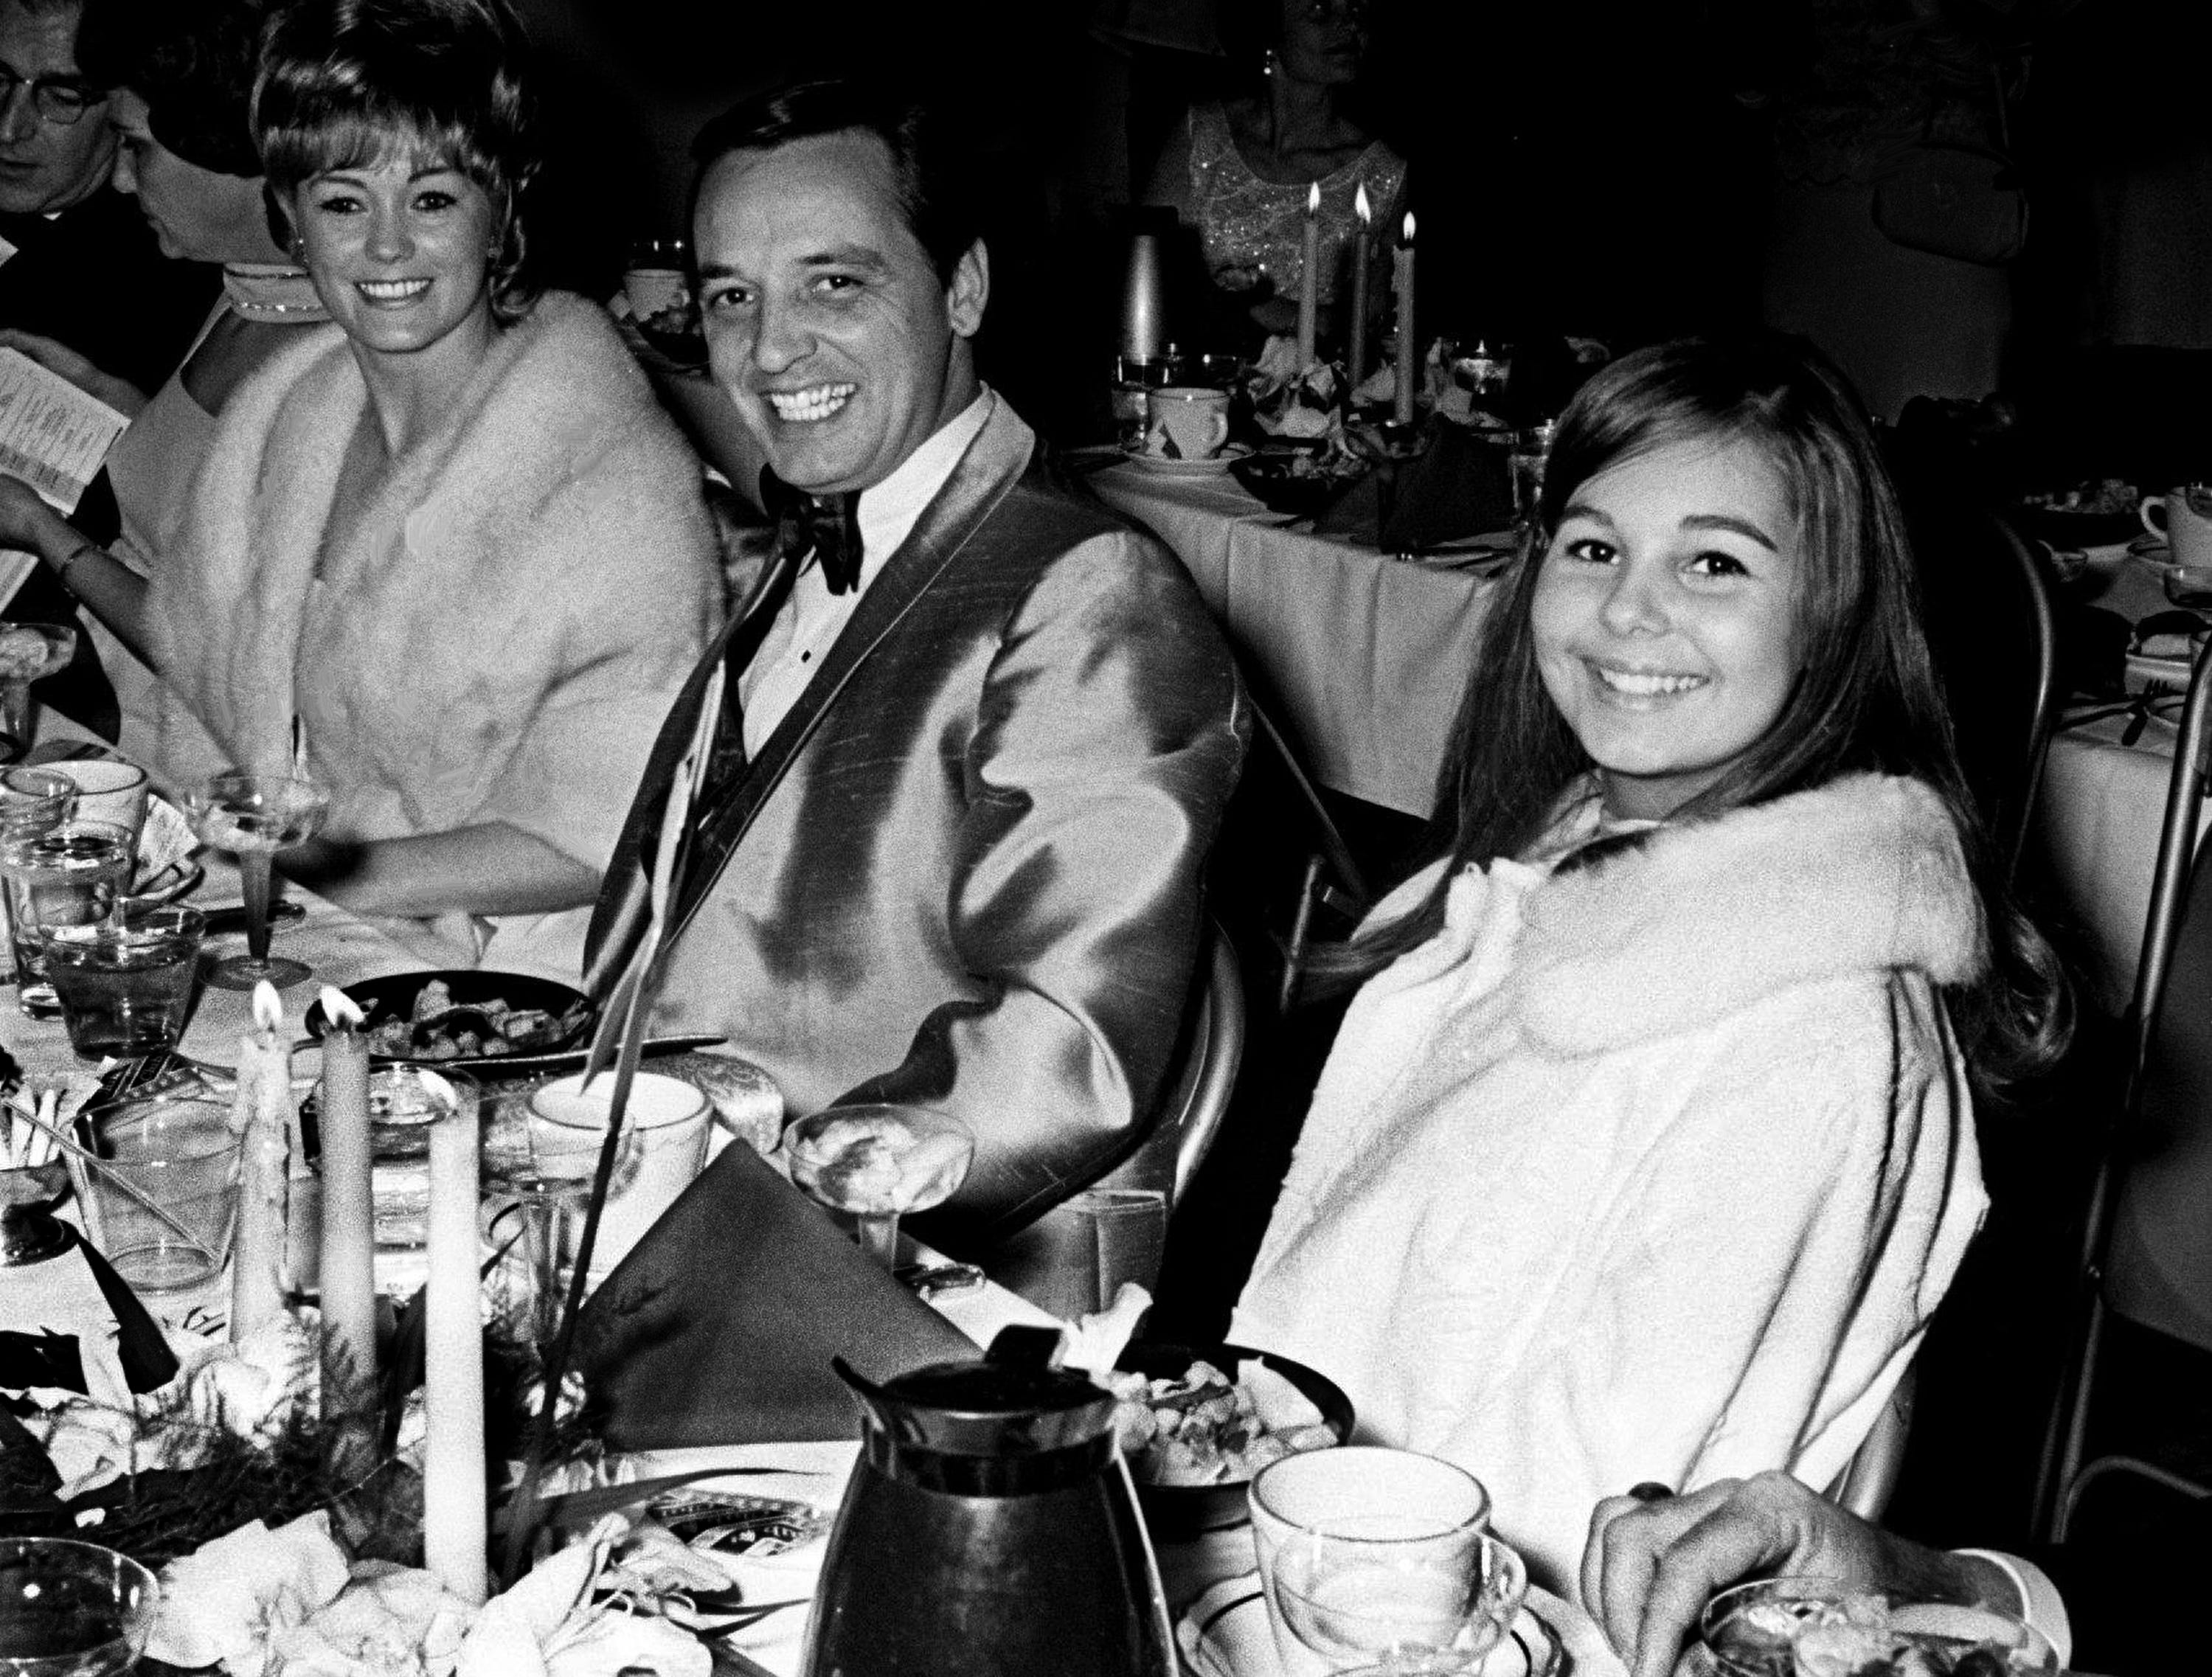 The Tennessean publisher Amon Carter Evans, center, and daughter Janet Evans, right, along with other family members, are enjoying the 11th annual Grammy Awards celebration at the National Guard Armory in Nashville March 12, 1969.